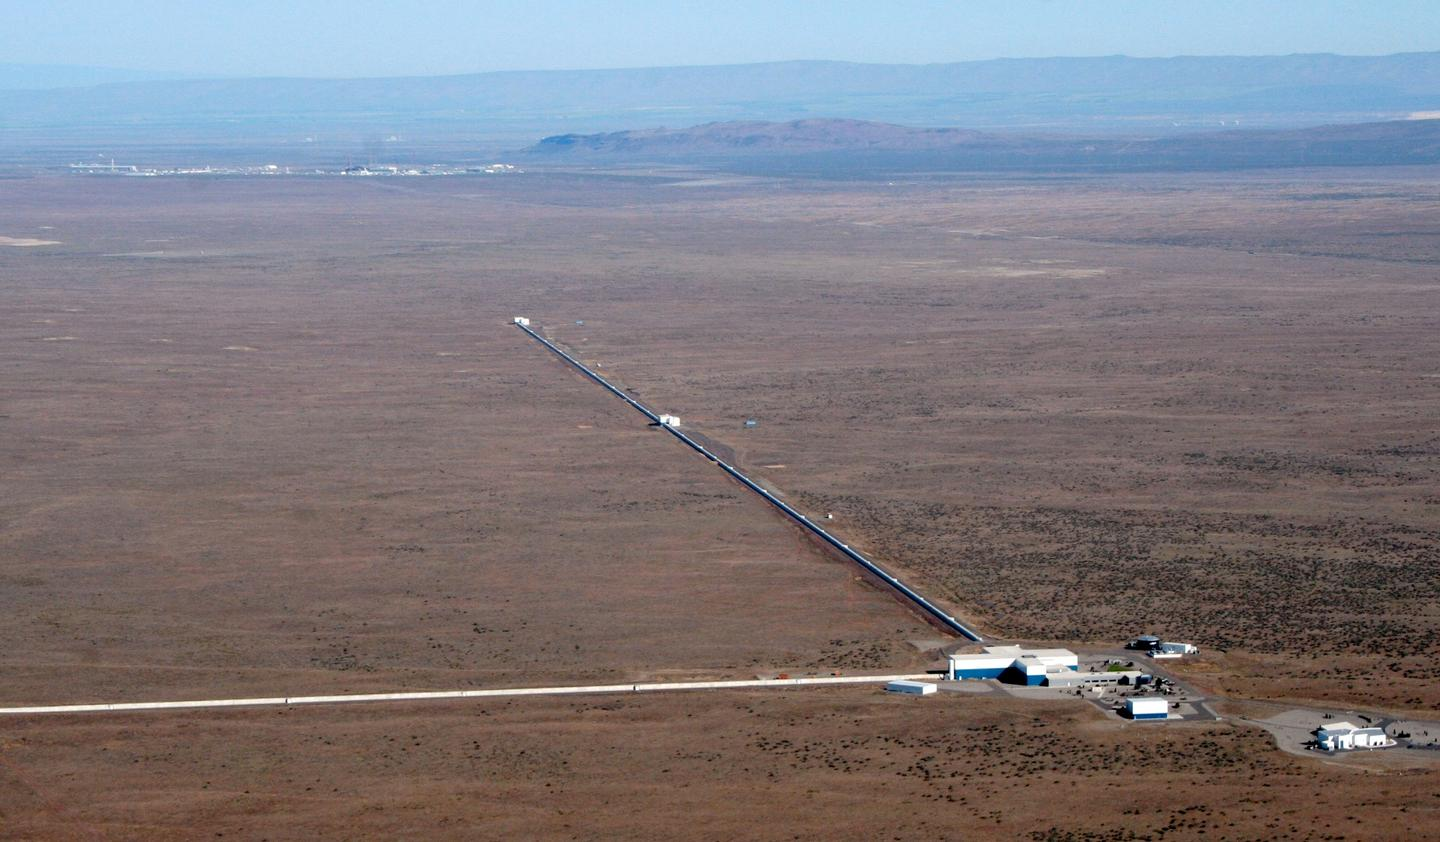 The LIGO facility in Hanford, Washington, one of two facilities operating in the US in the search for gravitational waves